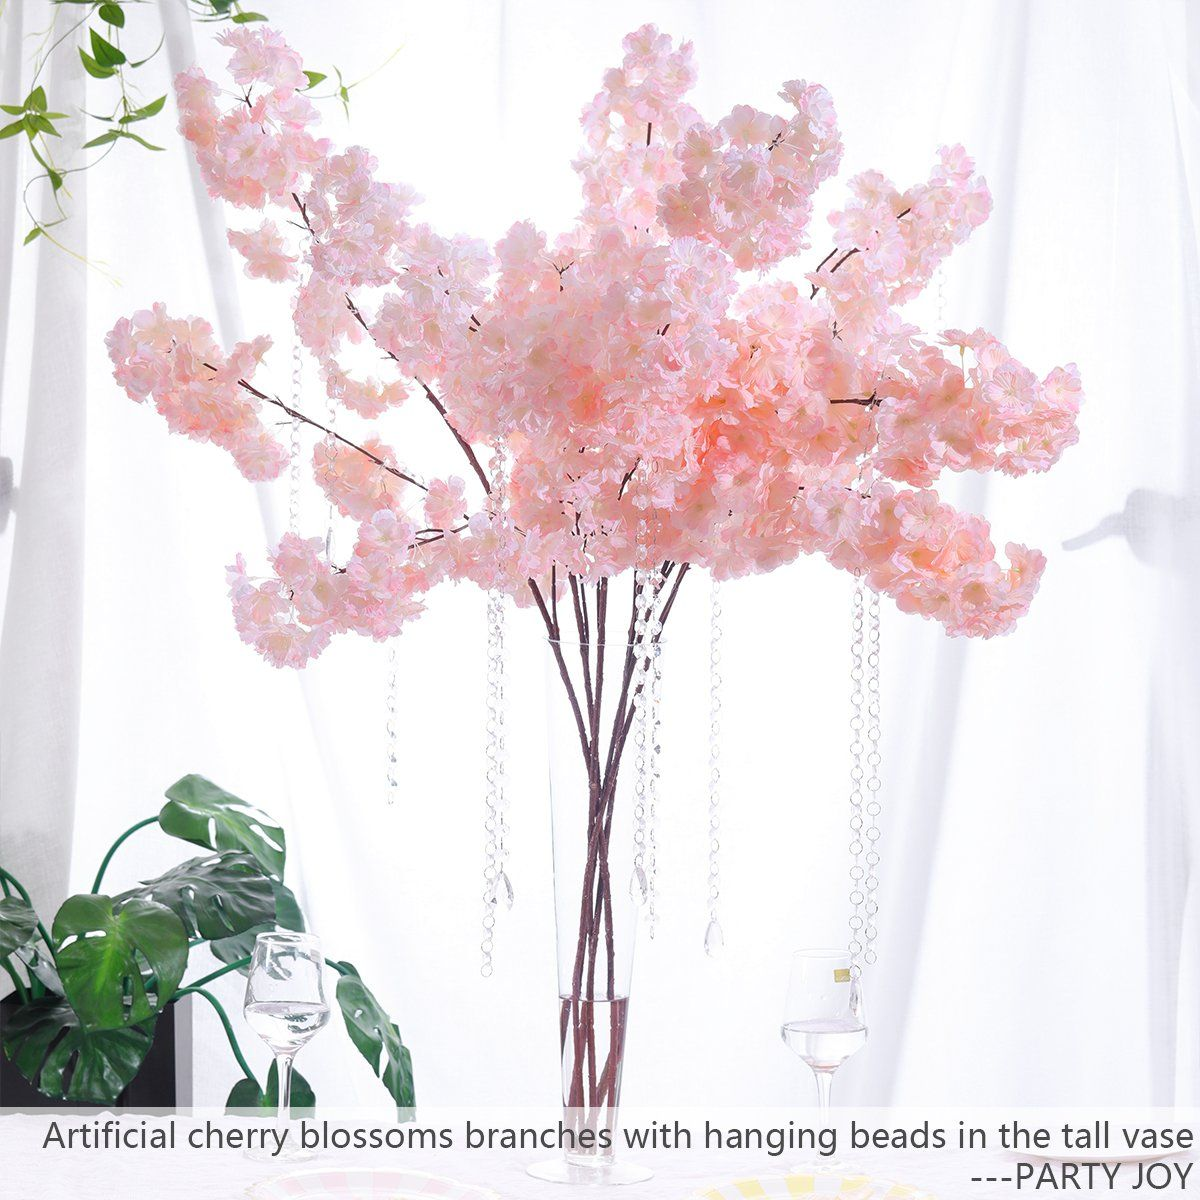 Party Joy 4pcs Artificial Cherry Blossom Branches Flowers Stems Silk Tall Fa Fake Flower Arrangements Silk Flower Centerpieces Wedding Decorations Centerpieces